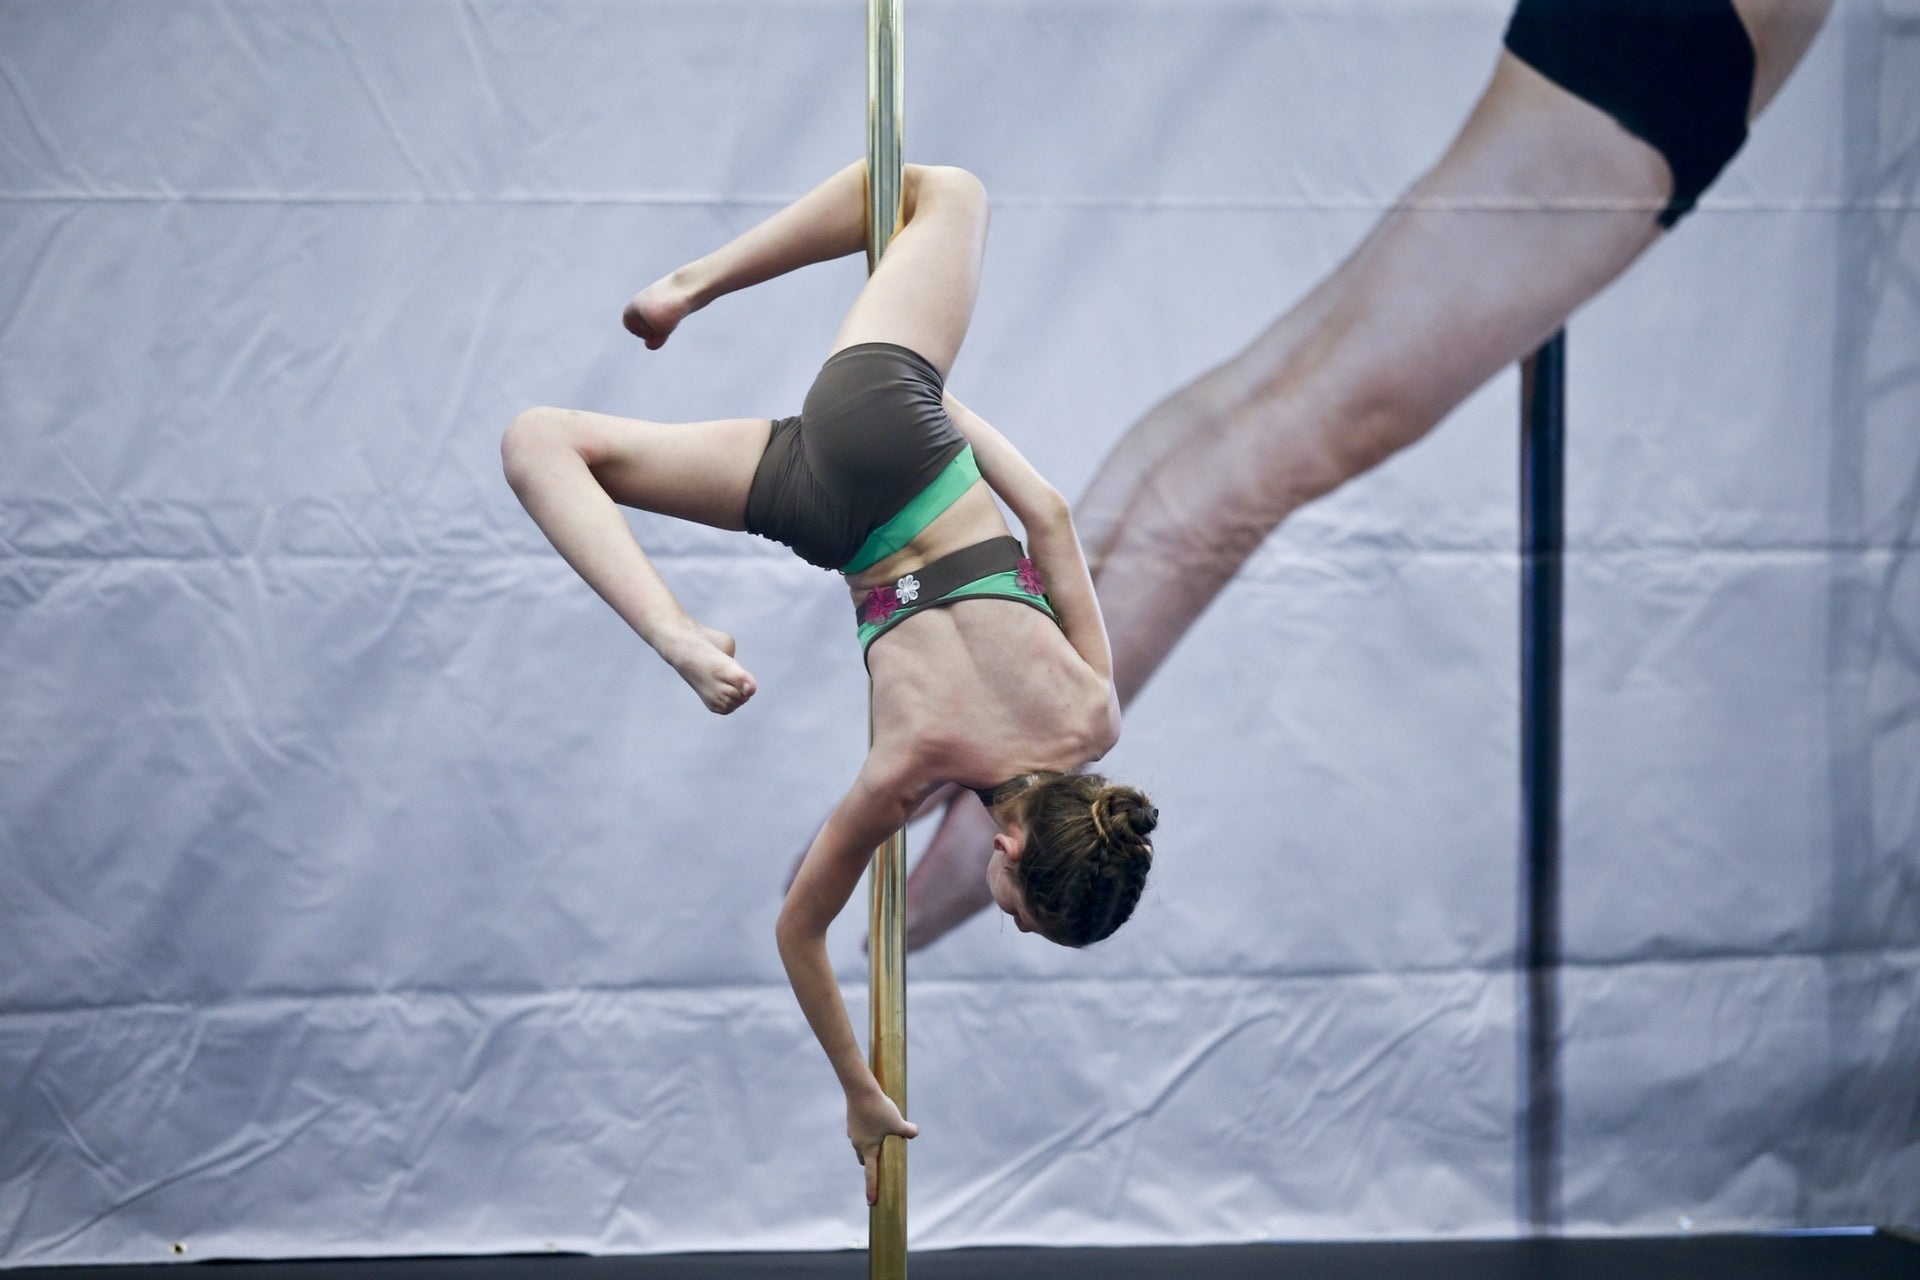 My daughter is flexible, the instructor told me. She'll ruffle in the air like a flag atop a pole.